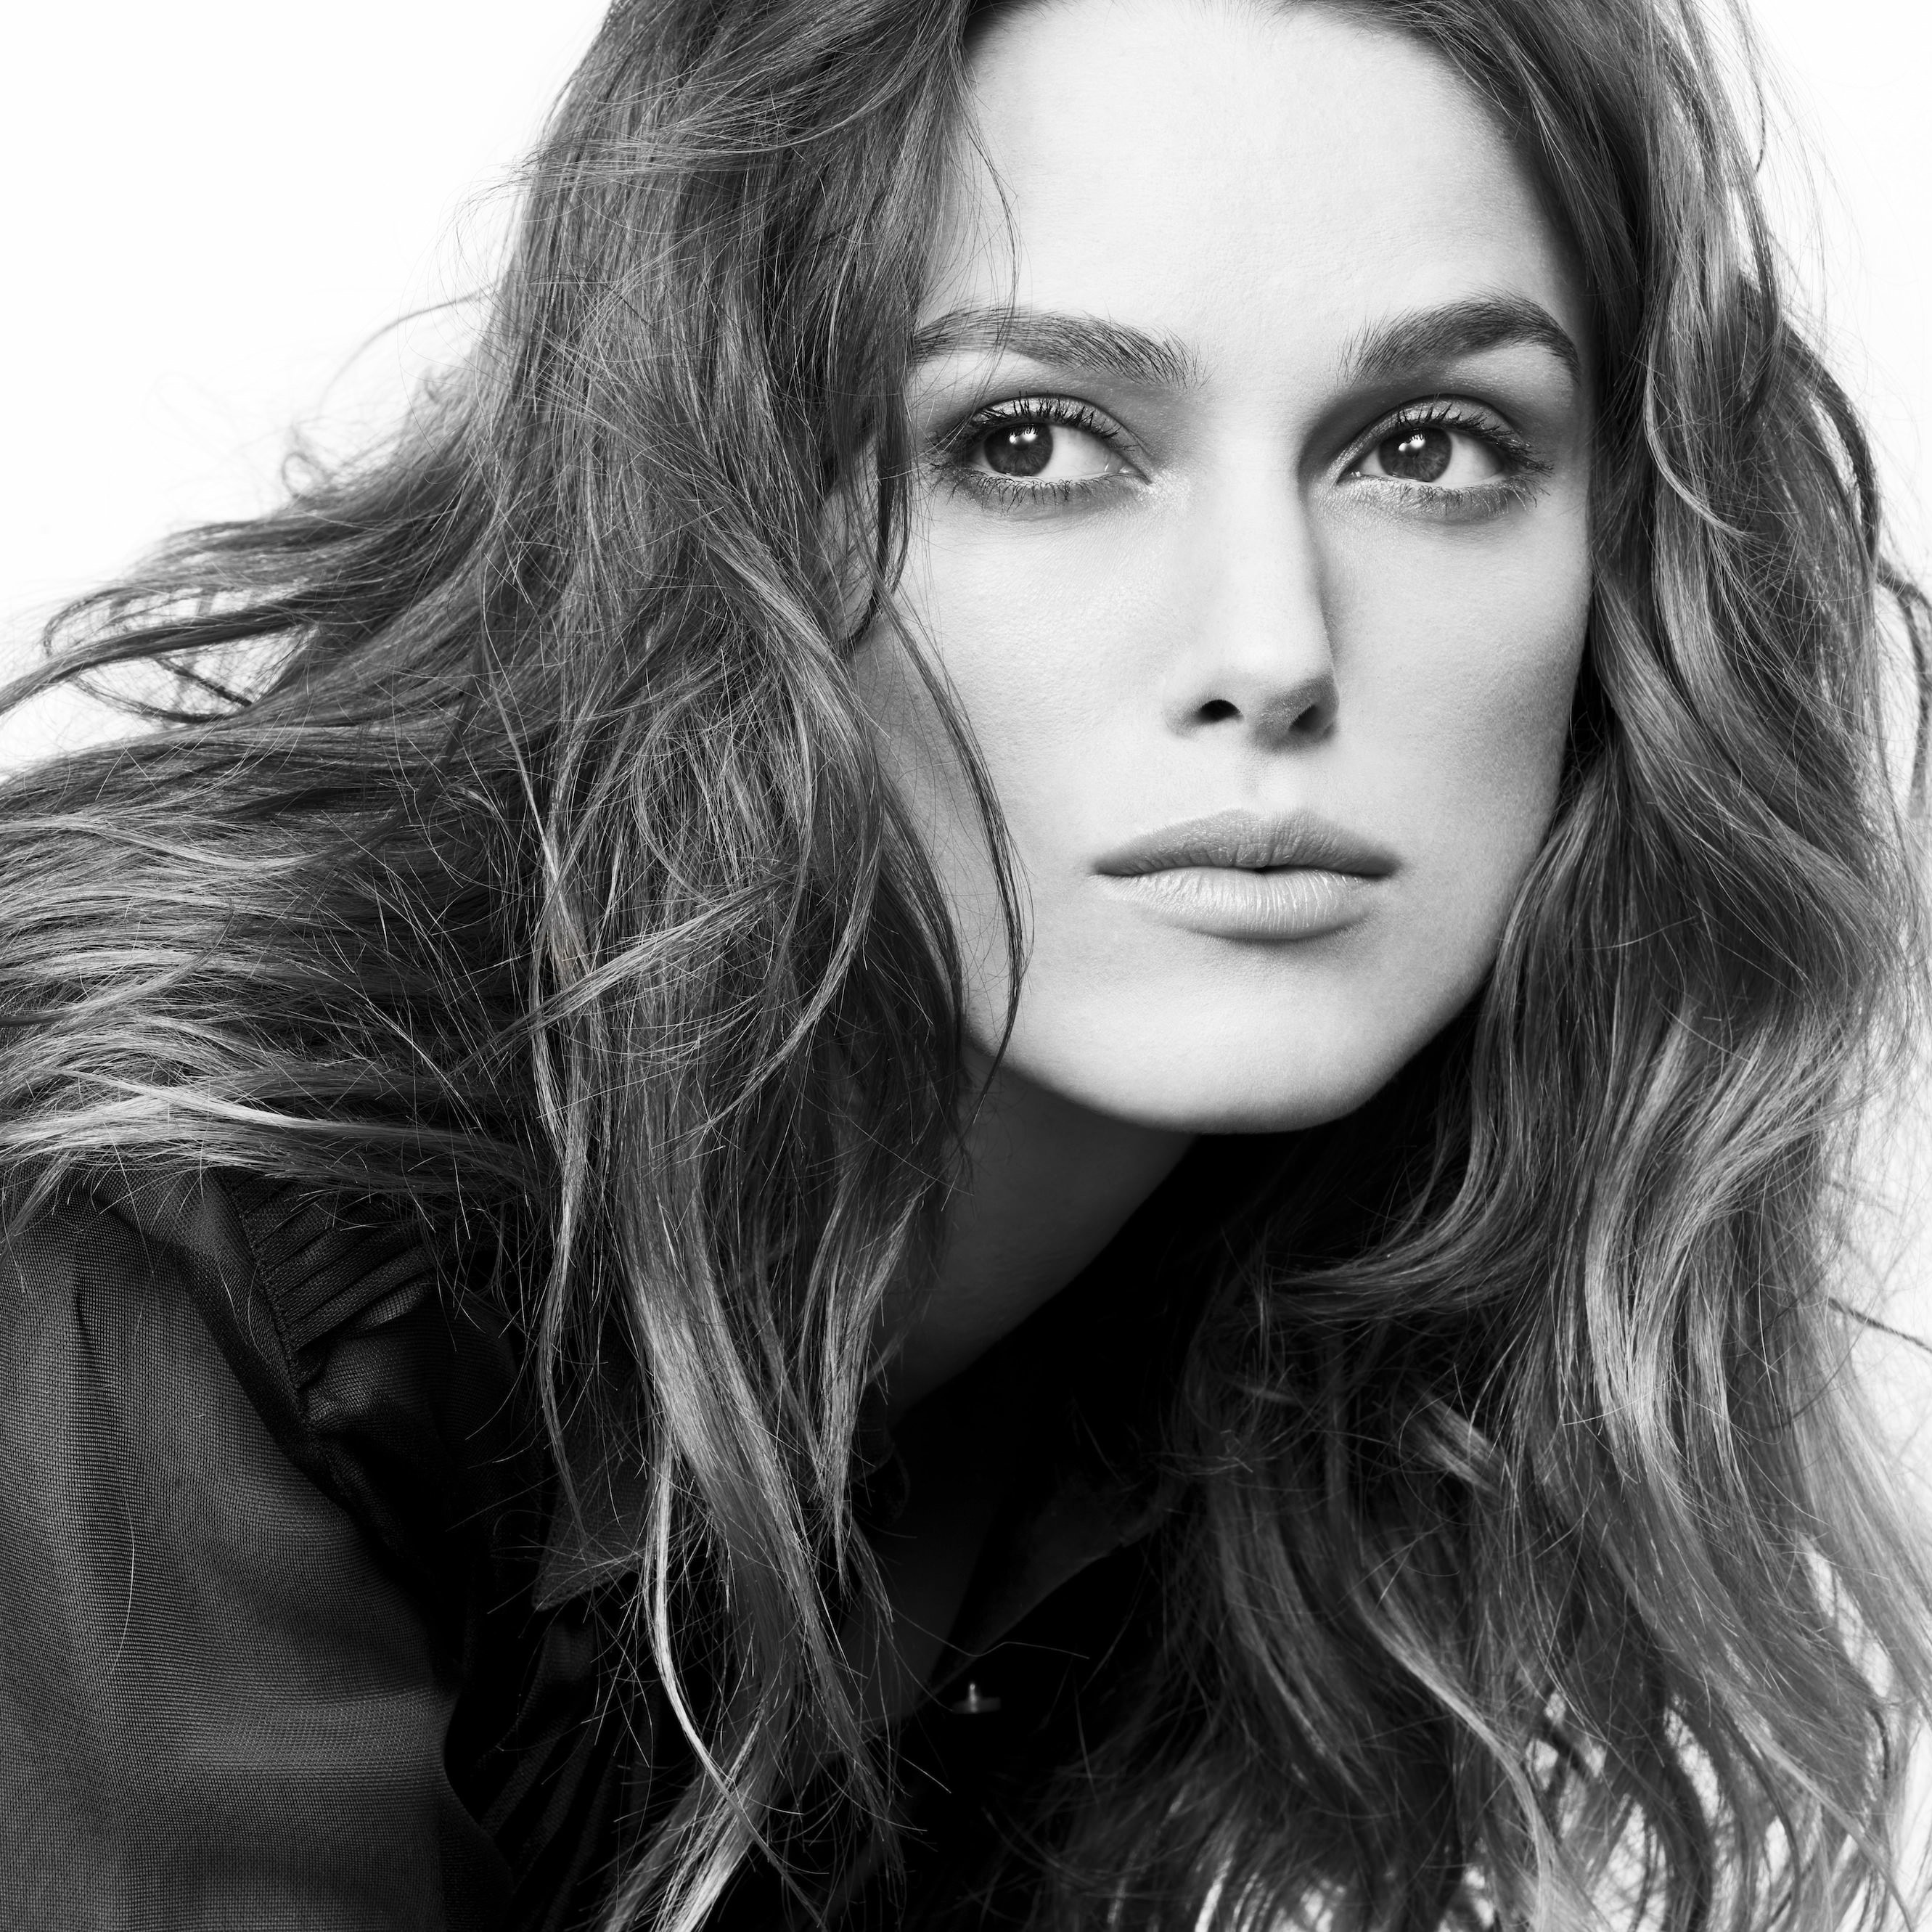 Keira Knightley in Black & White Wallpaper for Apple iPhone 6 Plus